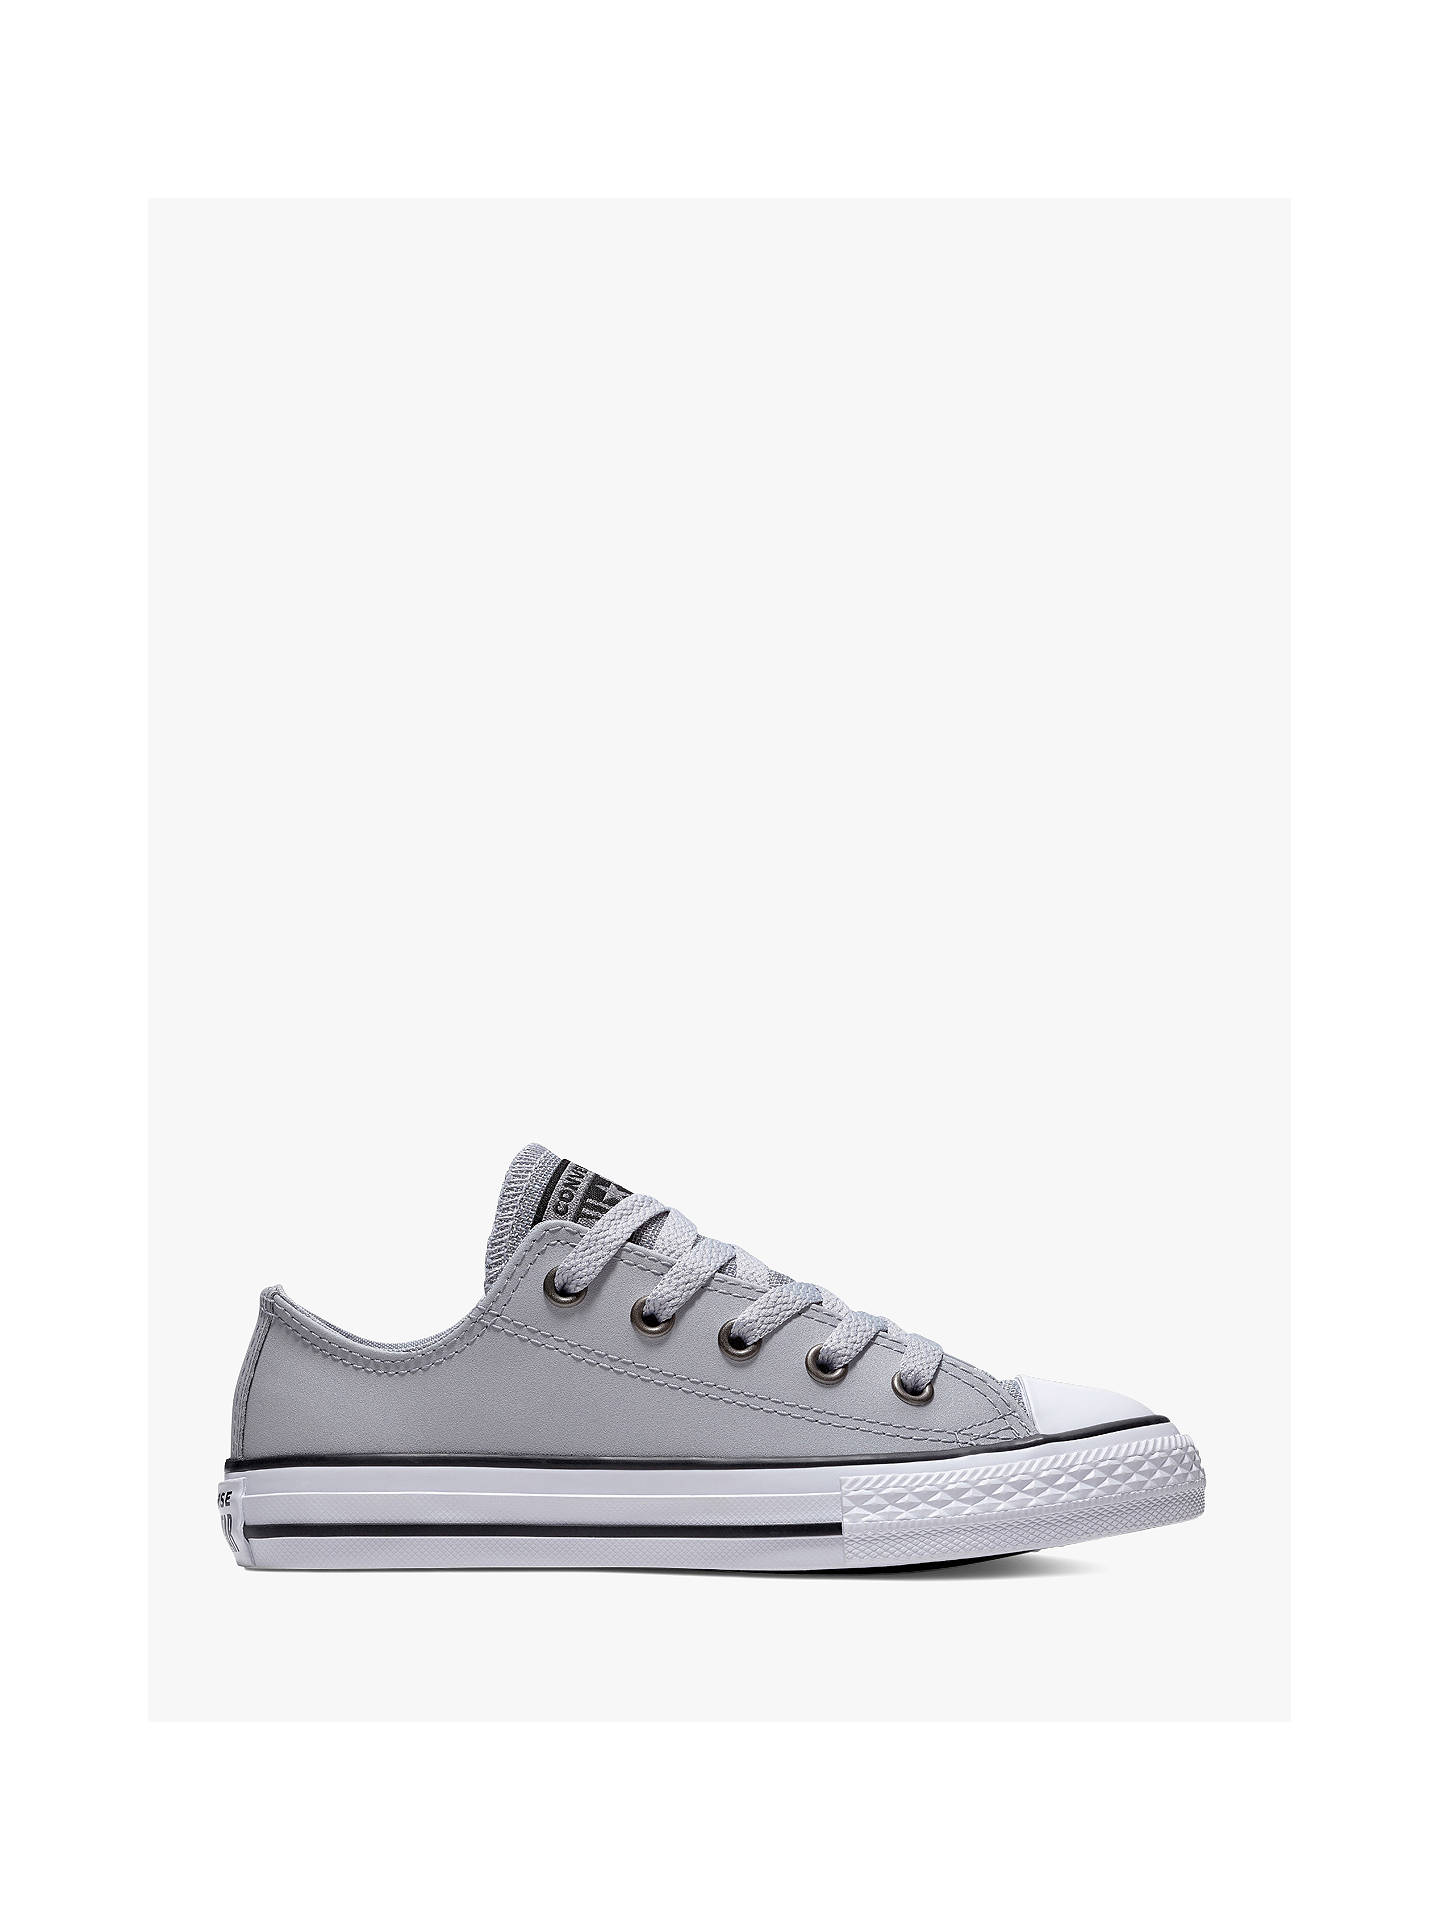 brand new 19f36 2b5b8 Buy Converse Children s Chuck Taylor All Star Ox Glitter Trainers, Silver,  10 Jnr Online ...